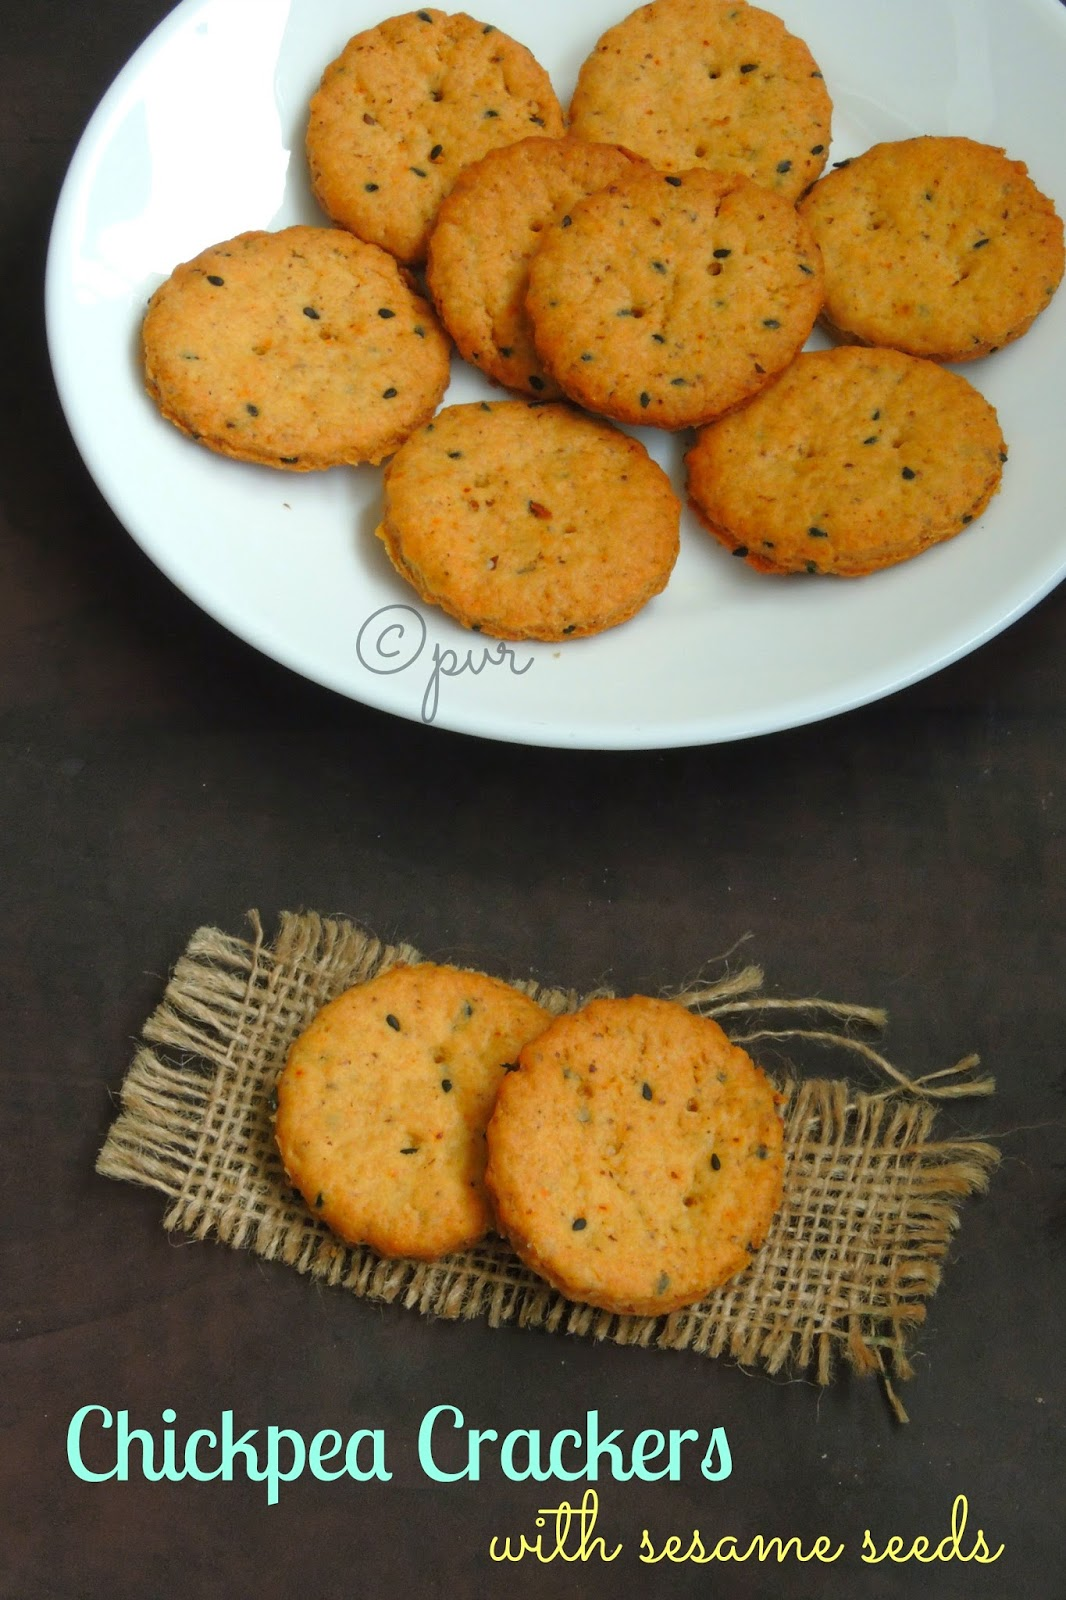 Chickpeas crackers, vegan chickpea crackers